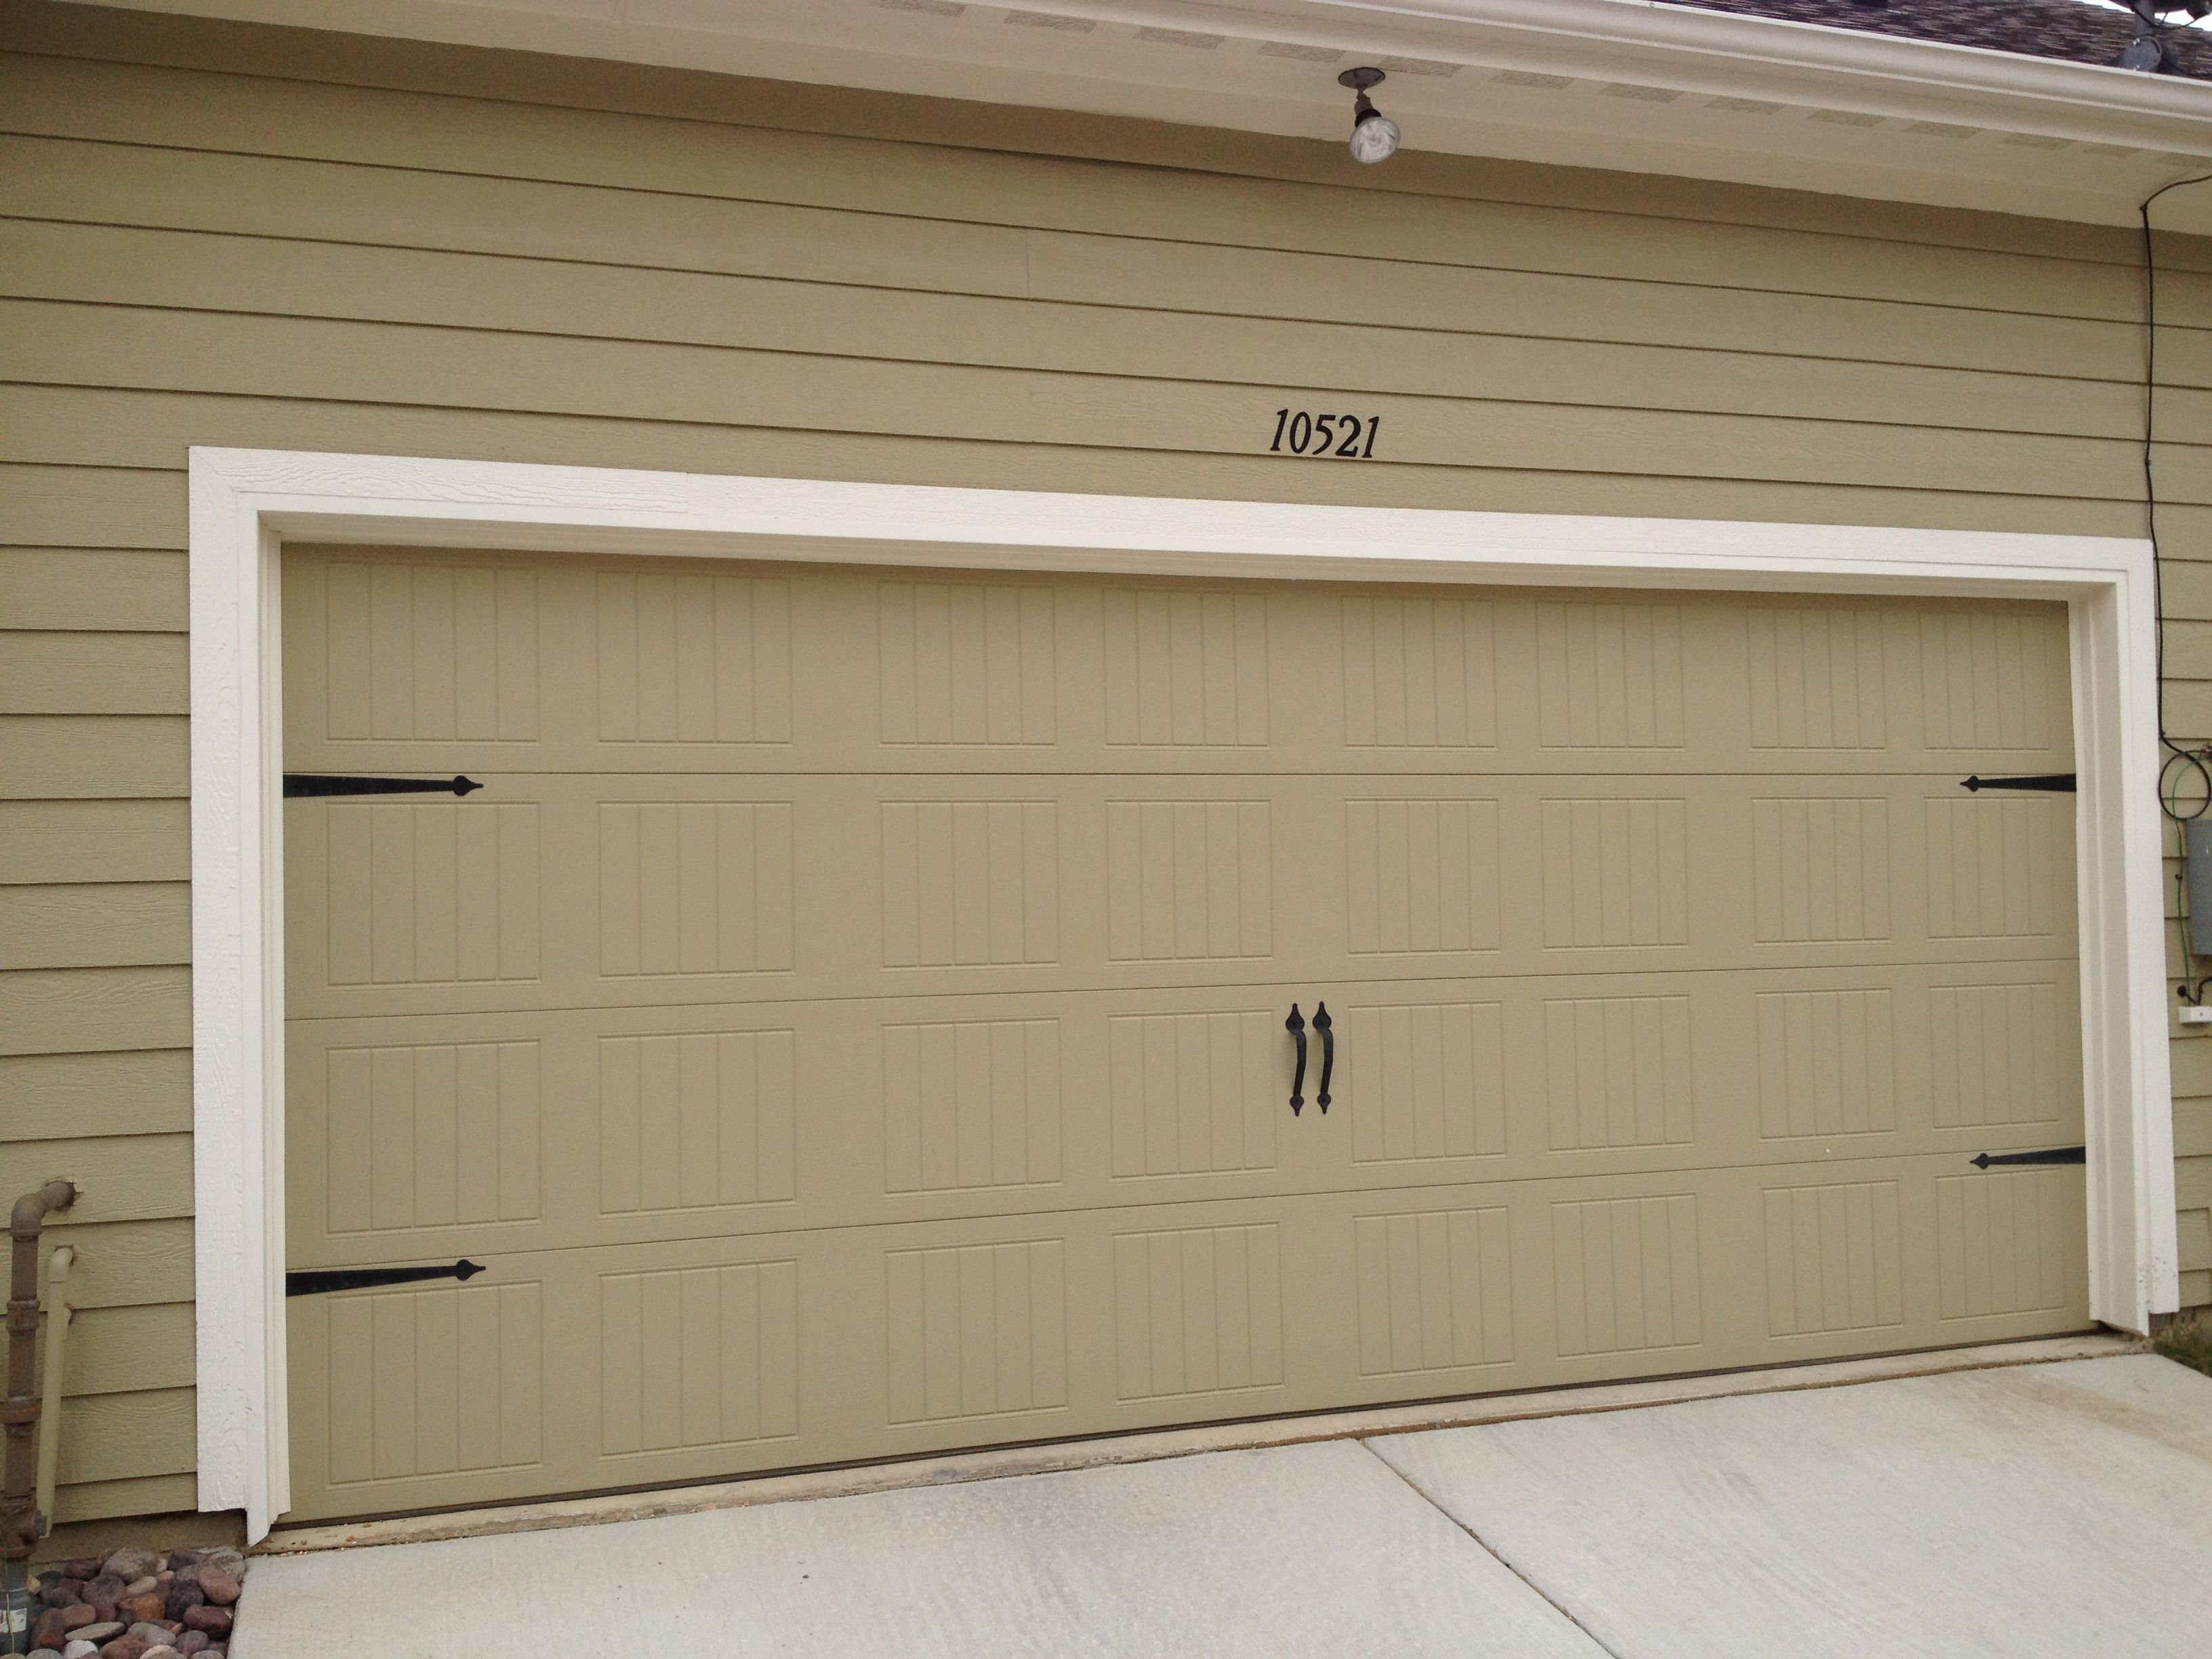 Bon Add Hardware And Street Numbers To Dress Up Garage Door